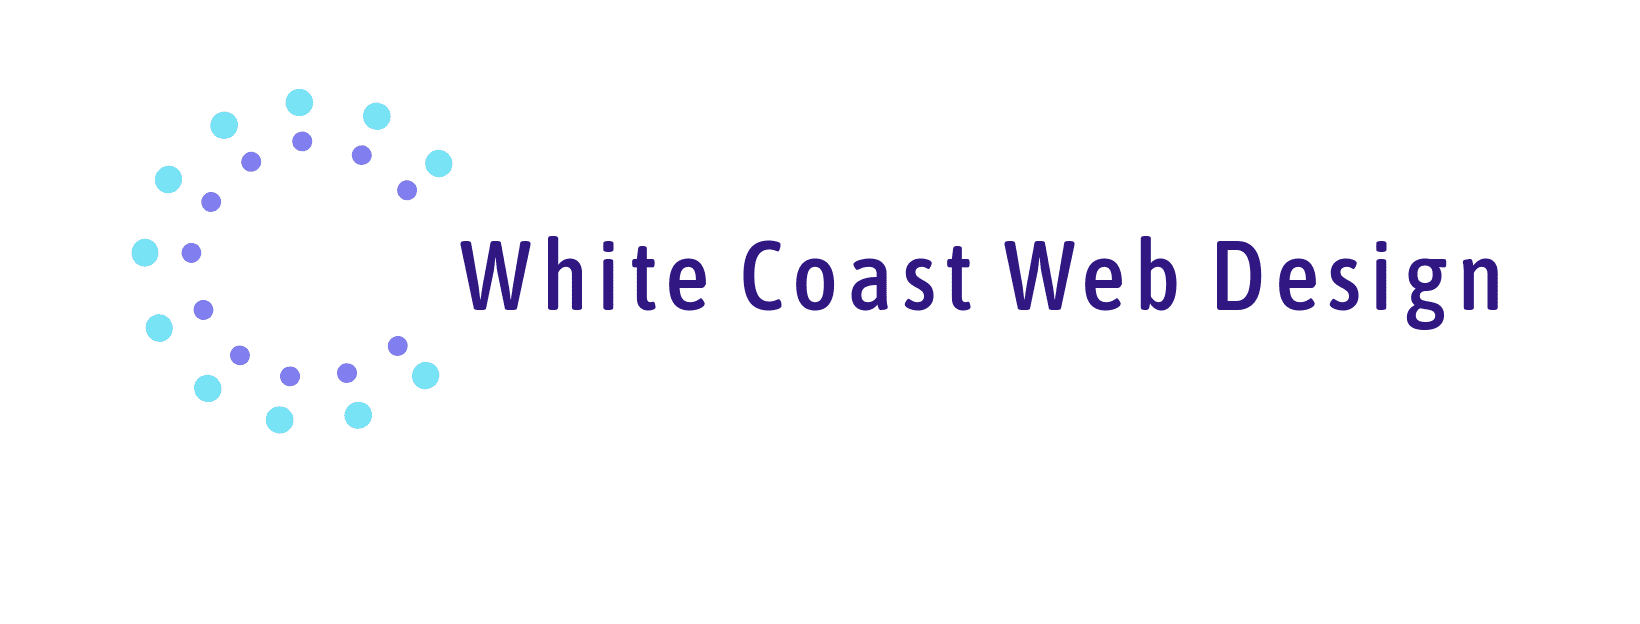 White Coast Web Design